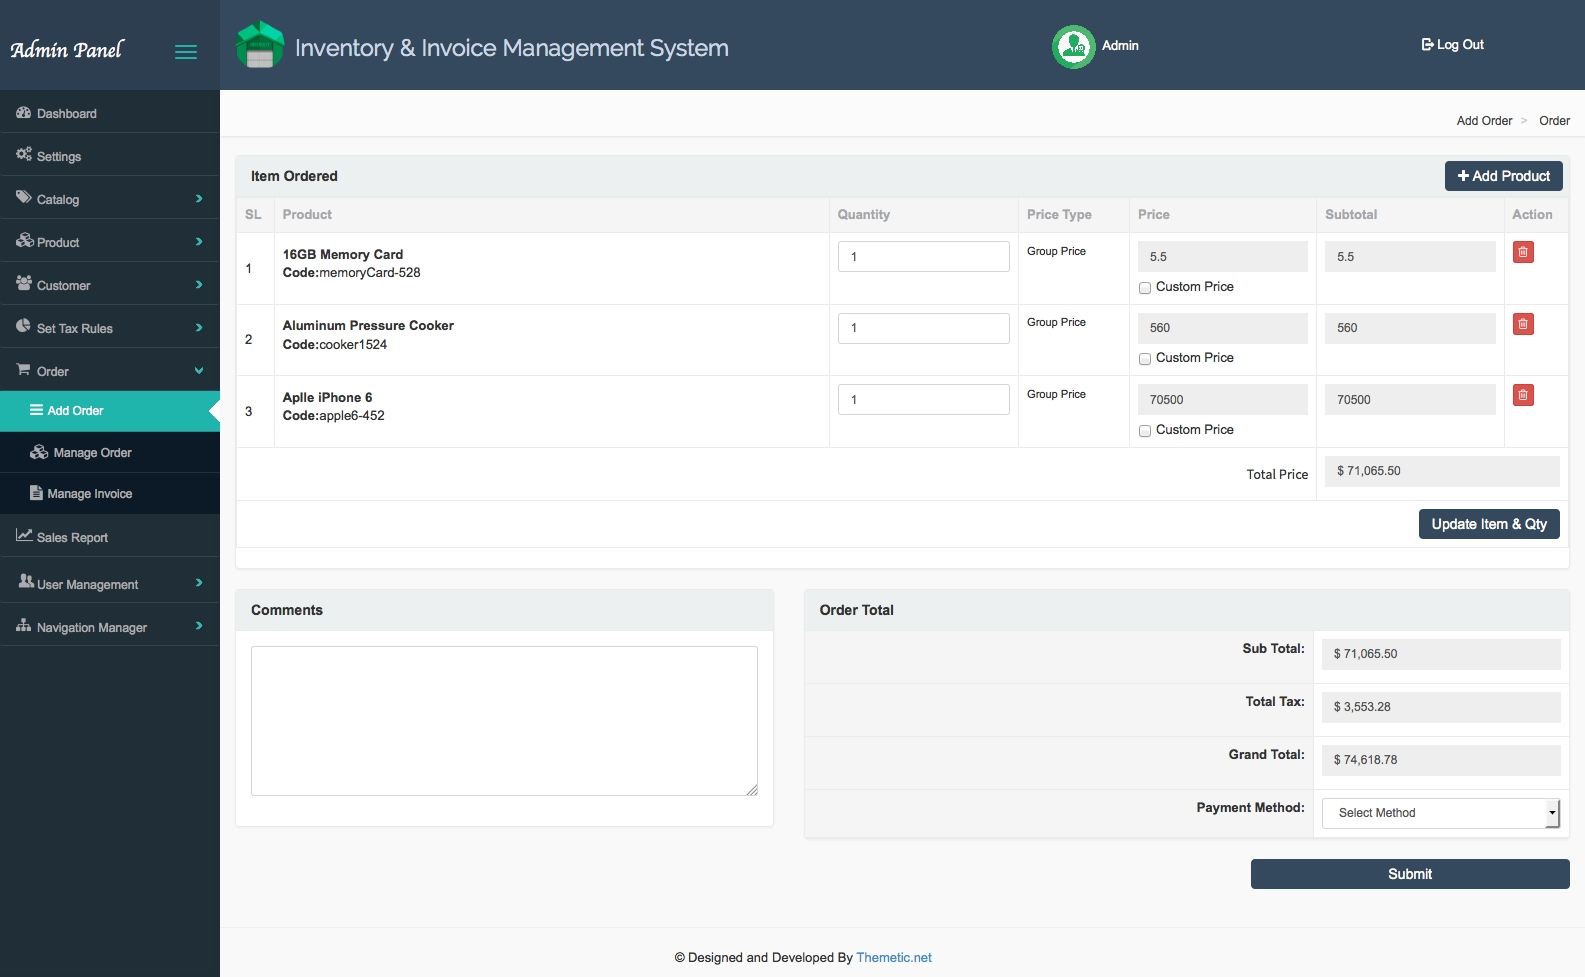 inventory and invoice management system iims v 12 fratelloneit invoice management systems